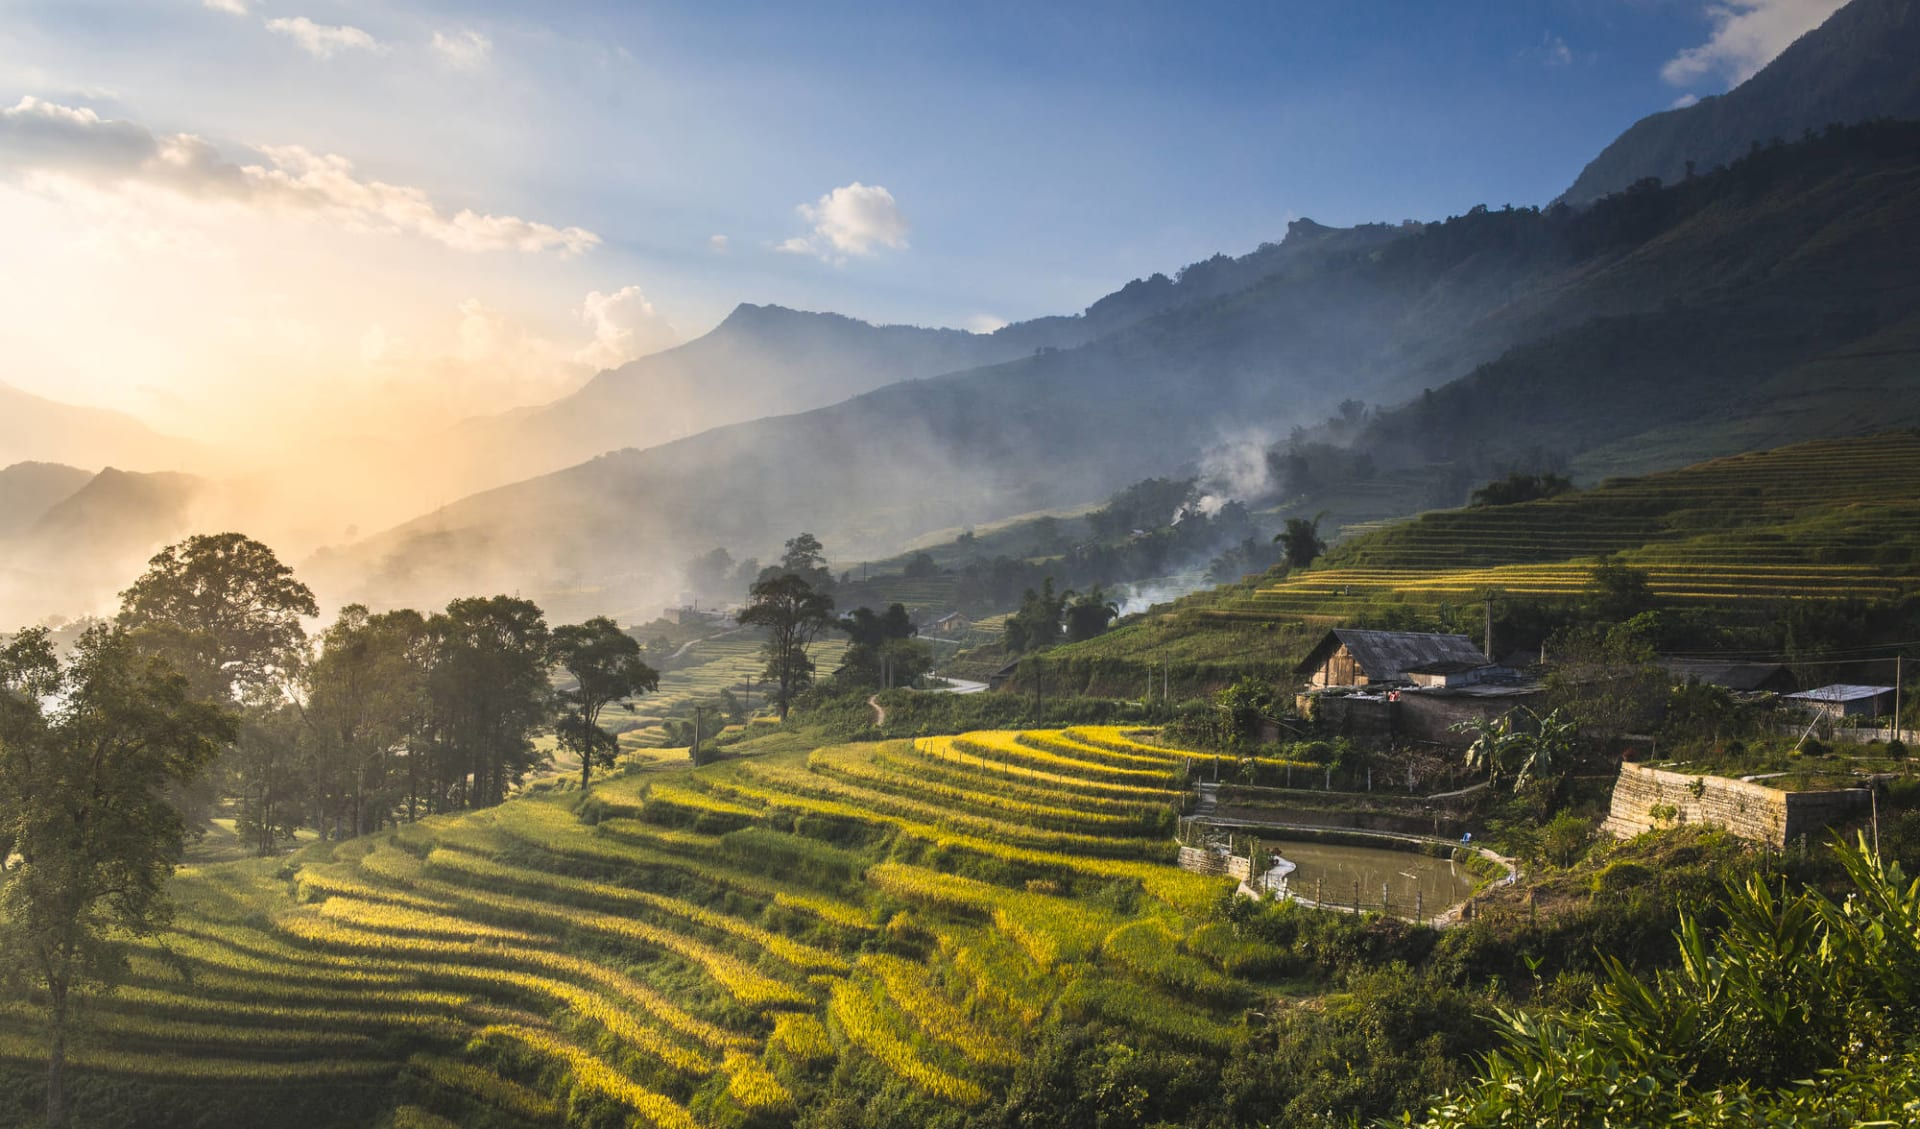 Abenteuer Sapa - Relax Package ab Hanoi: Terraced rice fields during sunset at Lao Cai Sapa